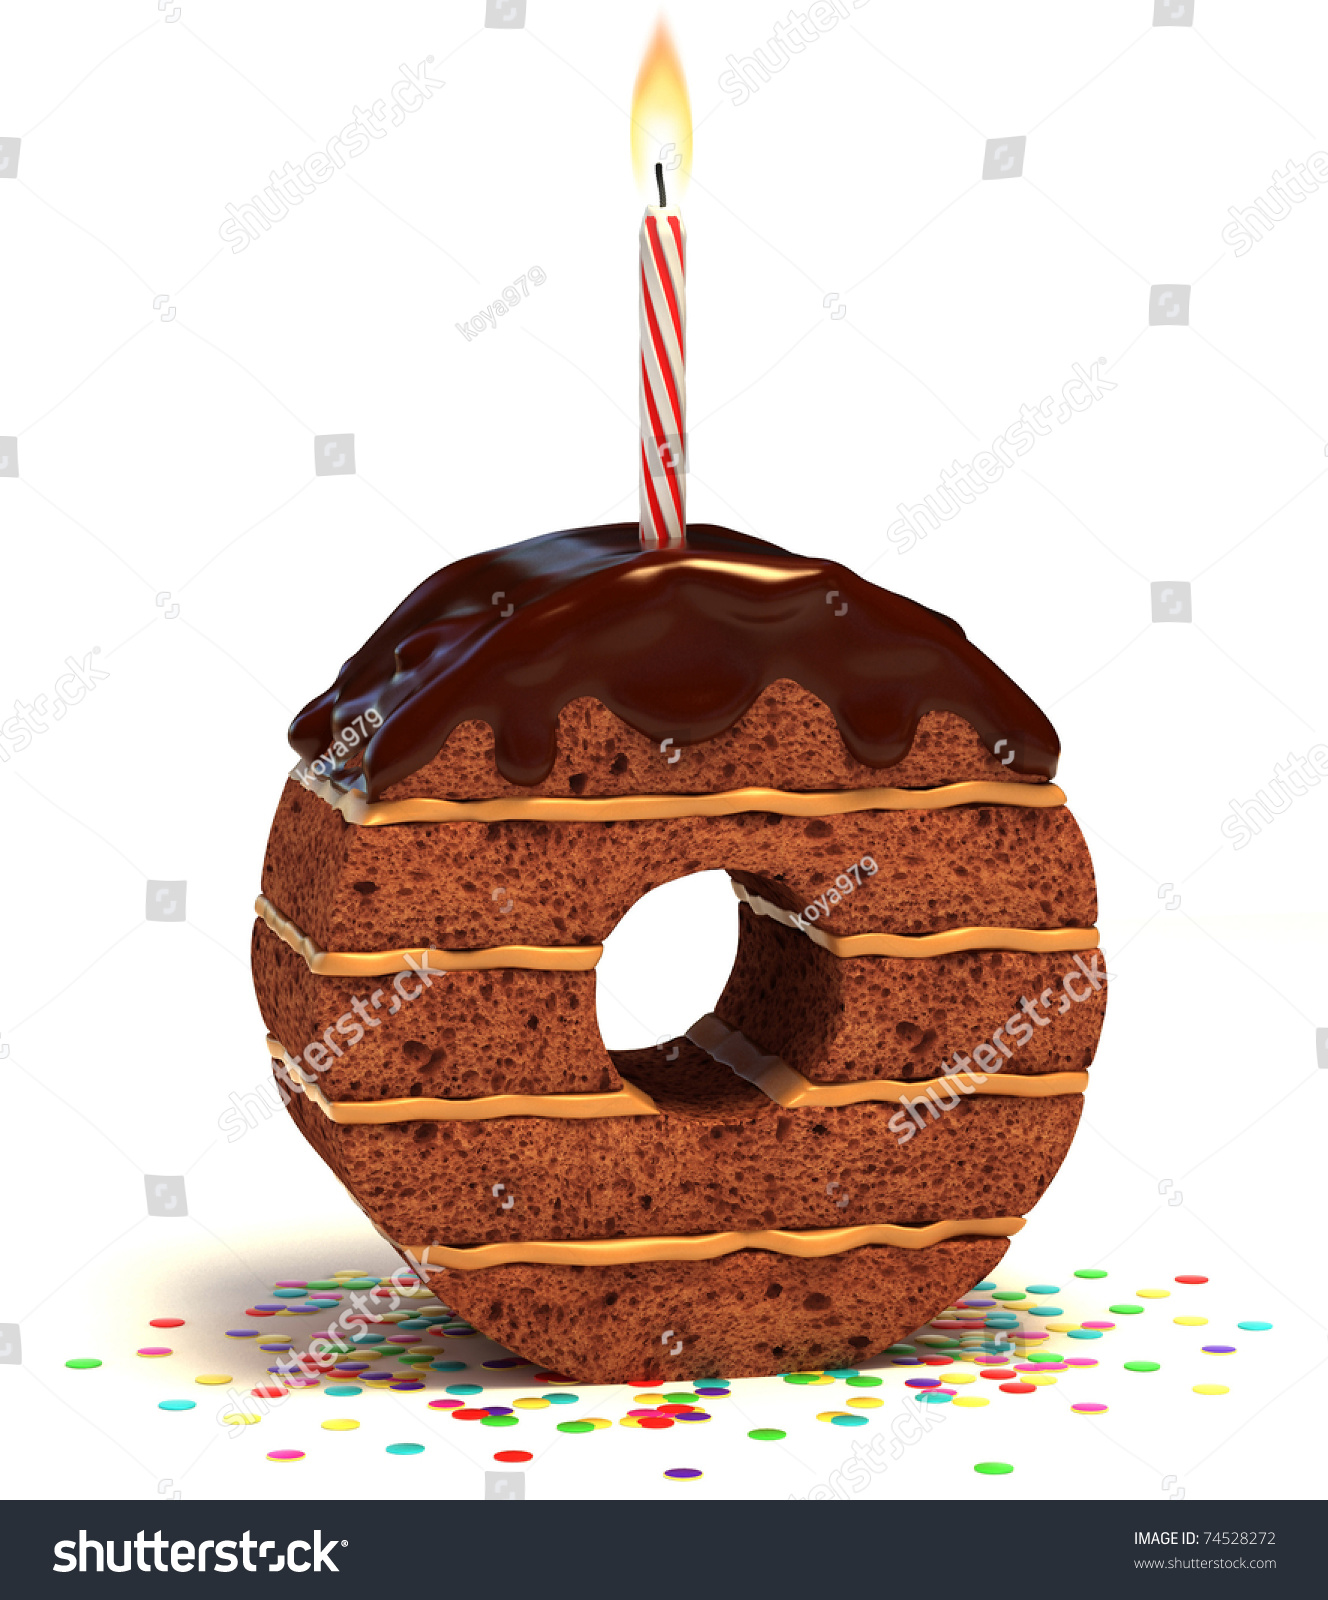 Letter O Shaped Chocolate Birthday Cake With Lit Candle